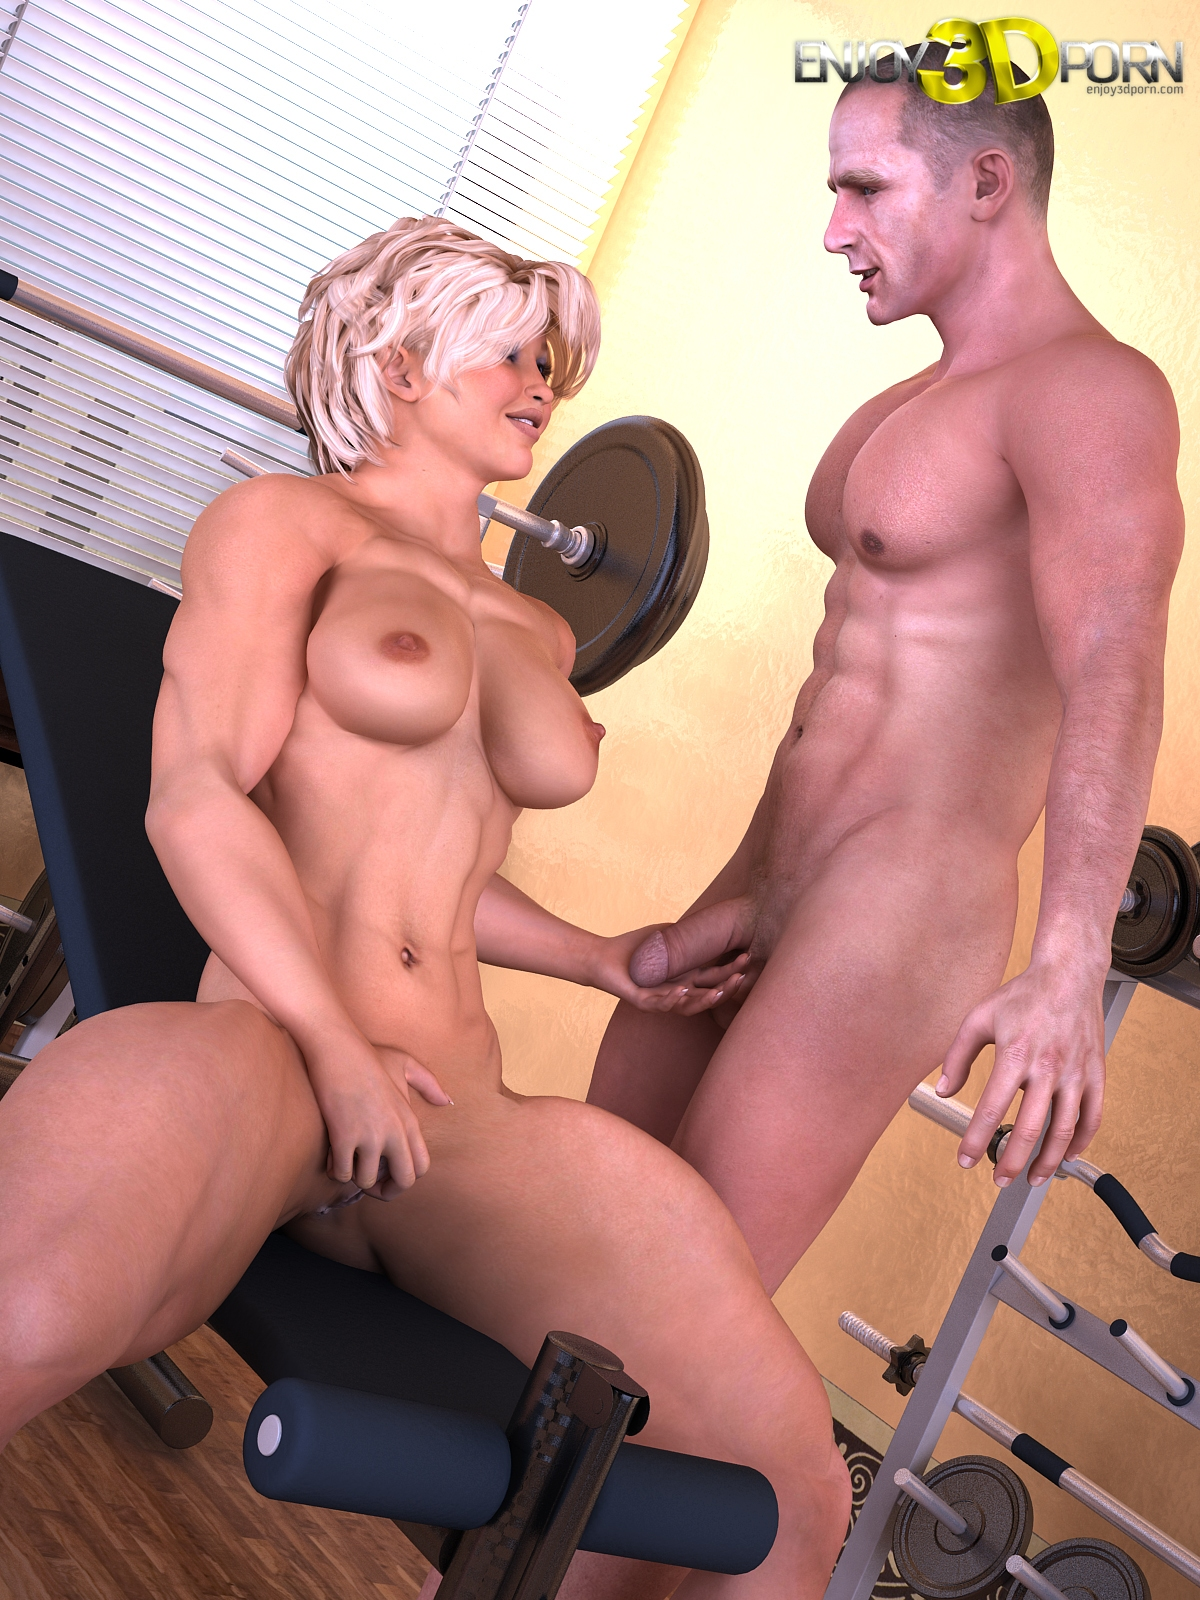 3d sex woman art big bodybuilding fucks scene